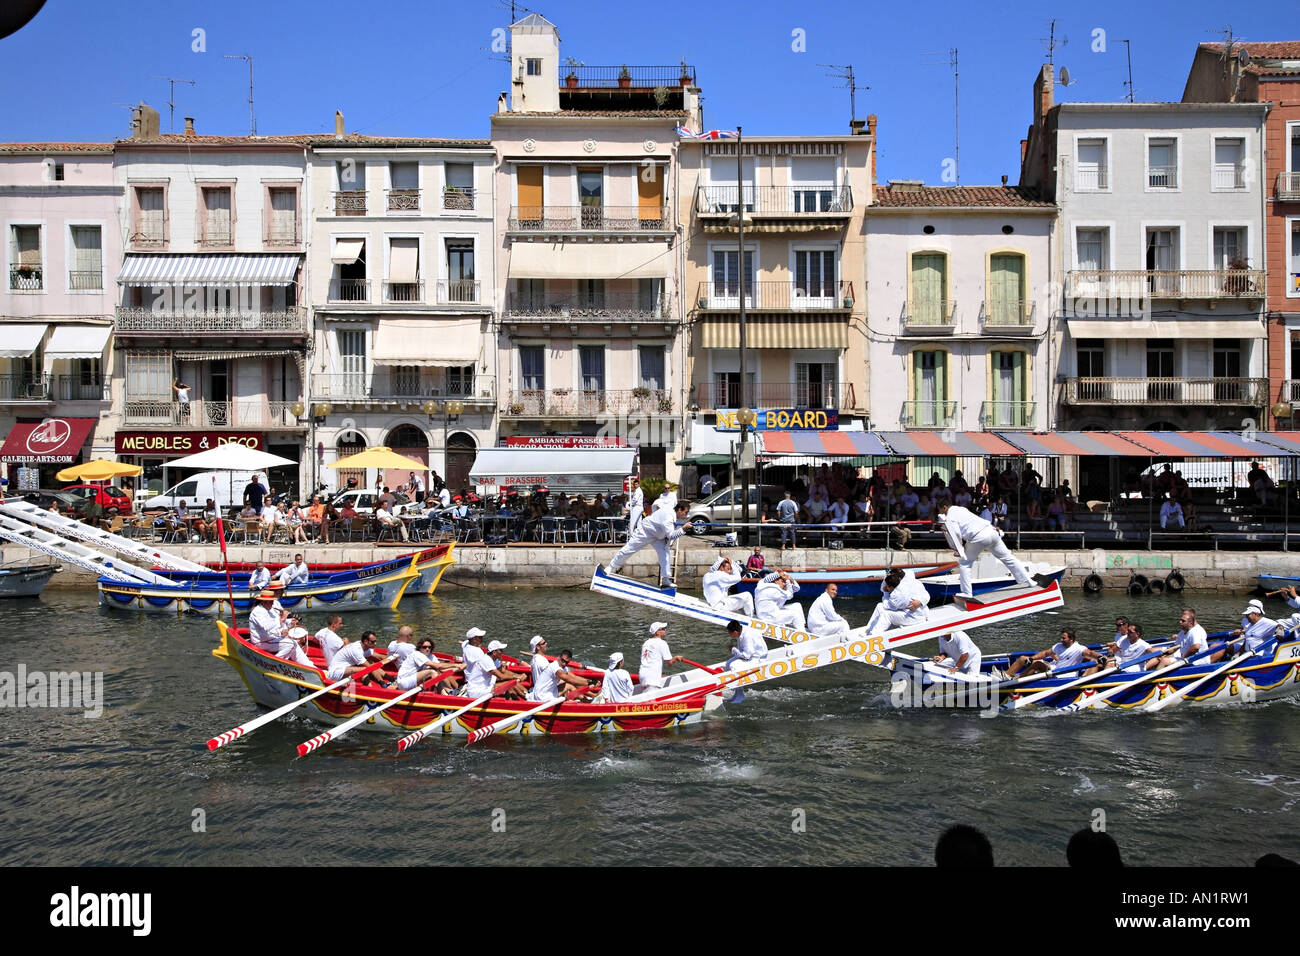 Royal Meubles France Water Tournament On The Canal Royal Sete Herault France Stock